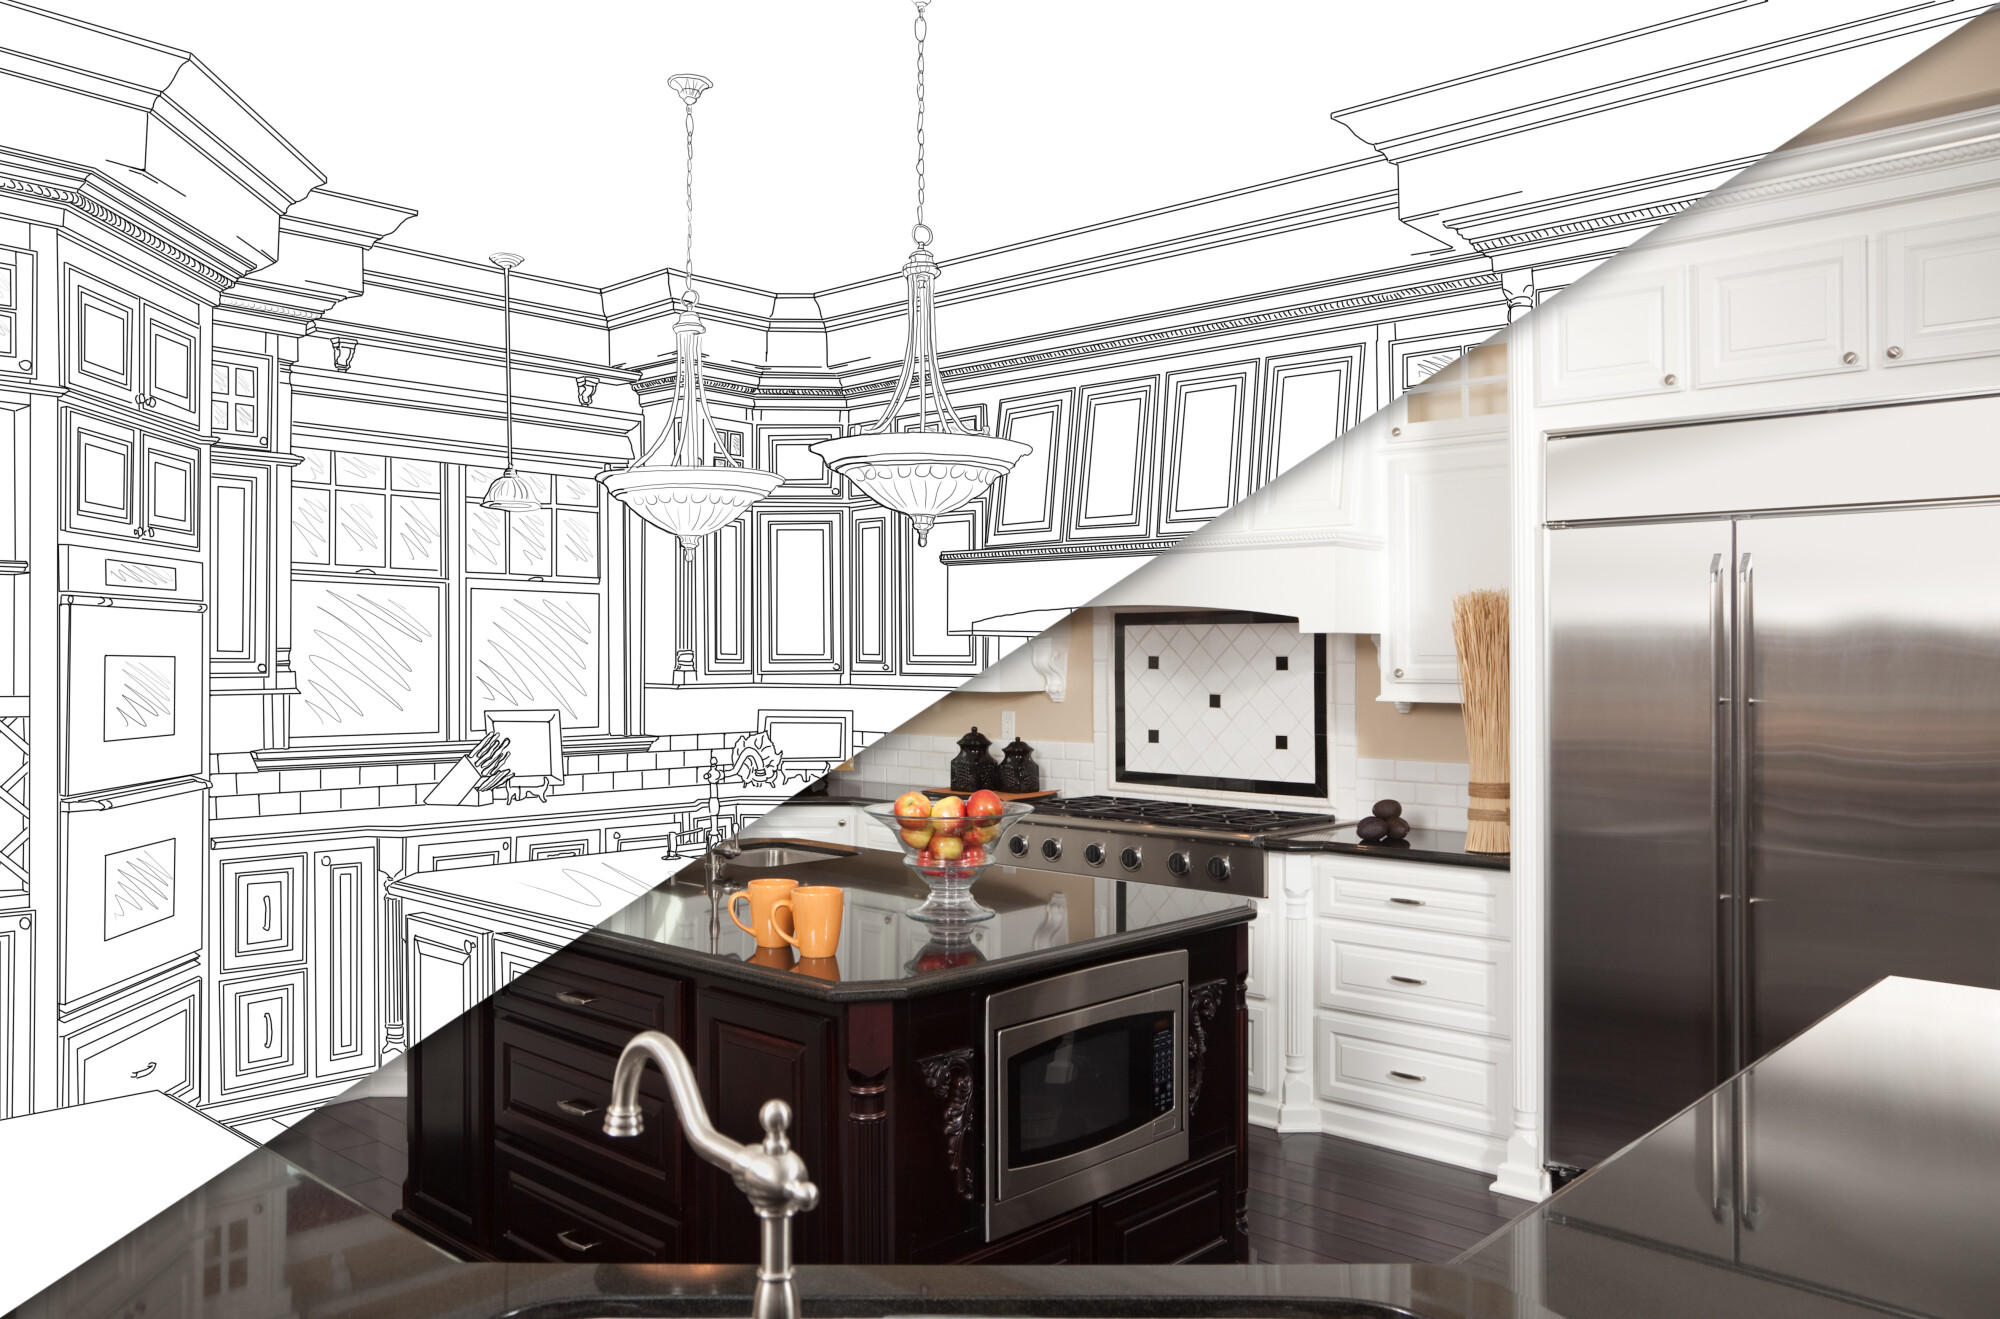 Finding the right professional to update your kitchen requires knowing your options. Here are factors to consider when hiring a kitchen remodeling company.b02b604591418df73dfb4a900dc0